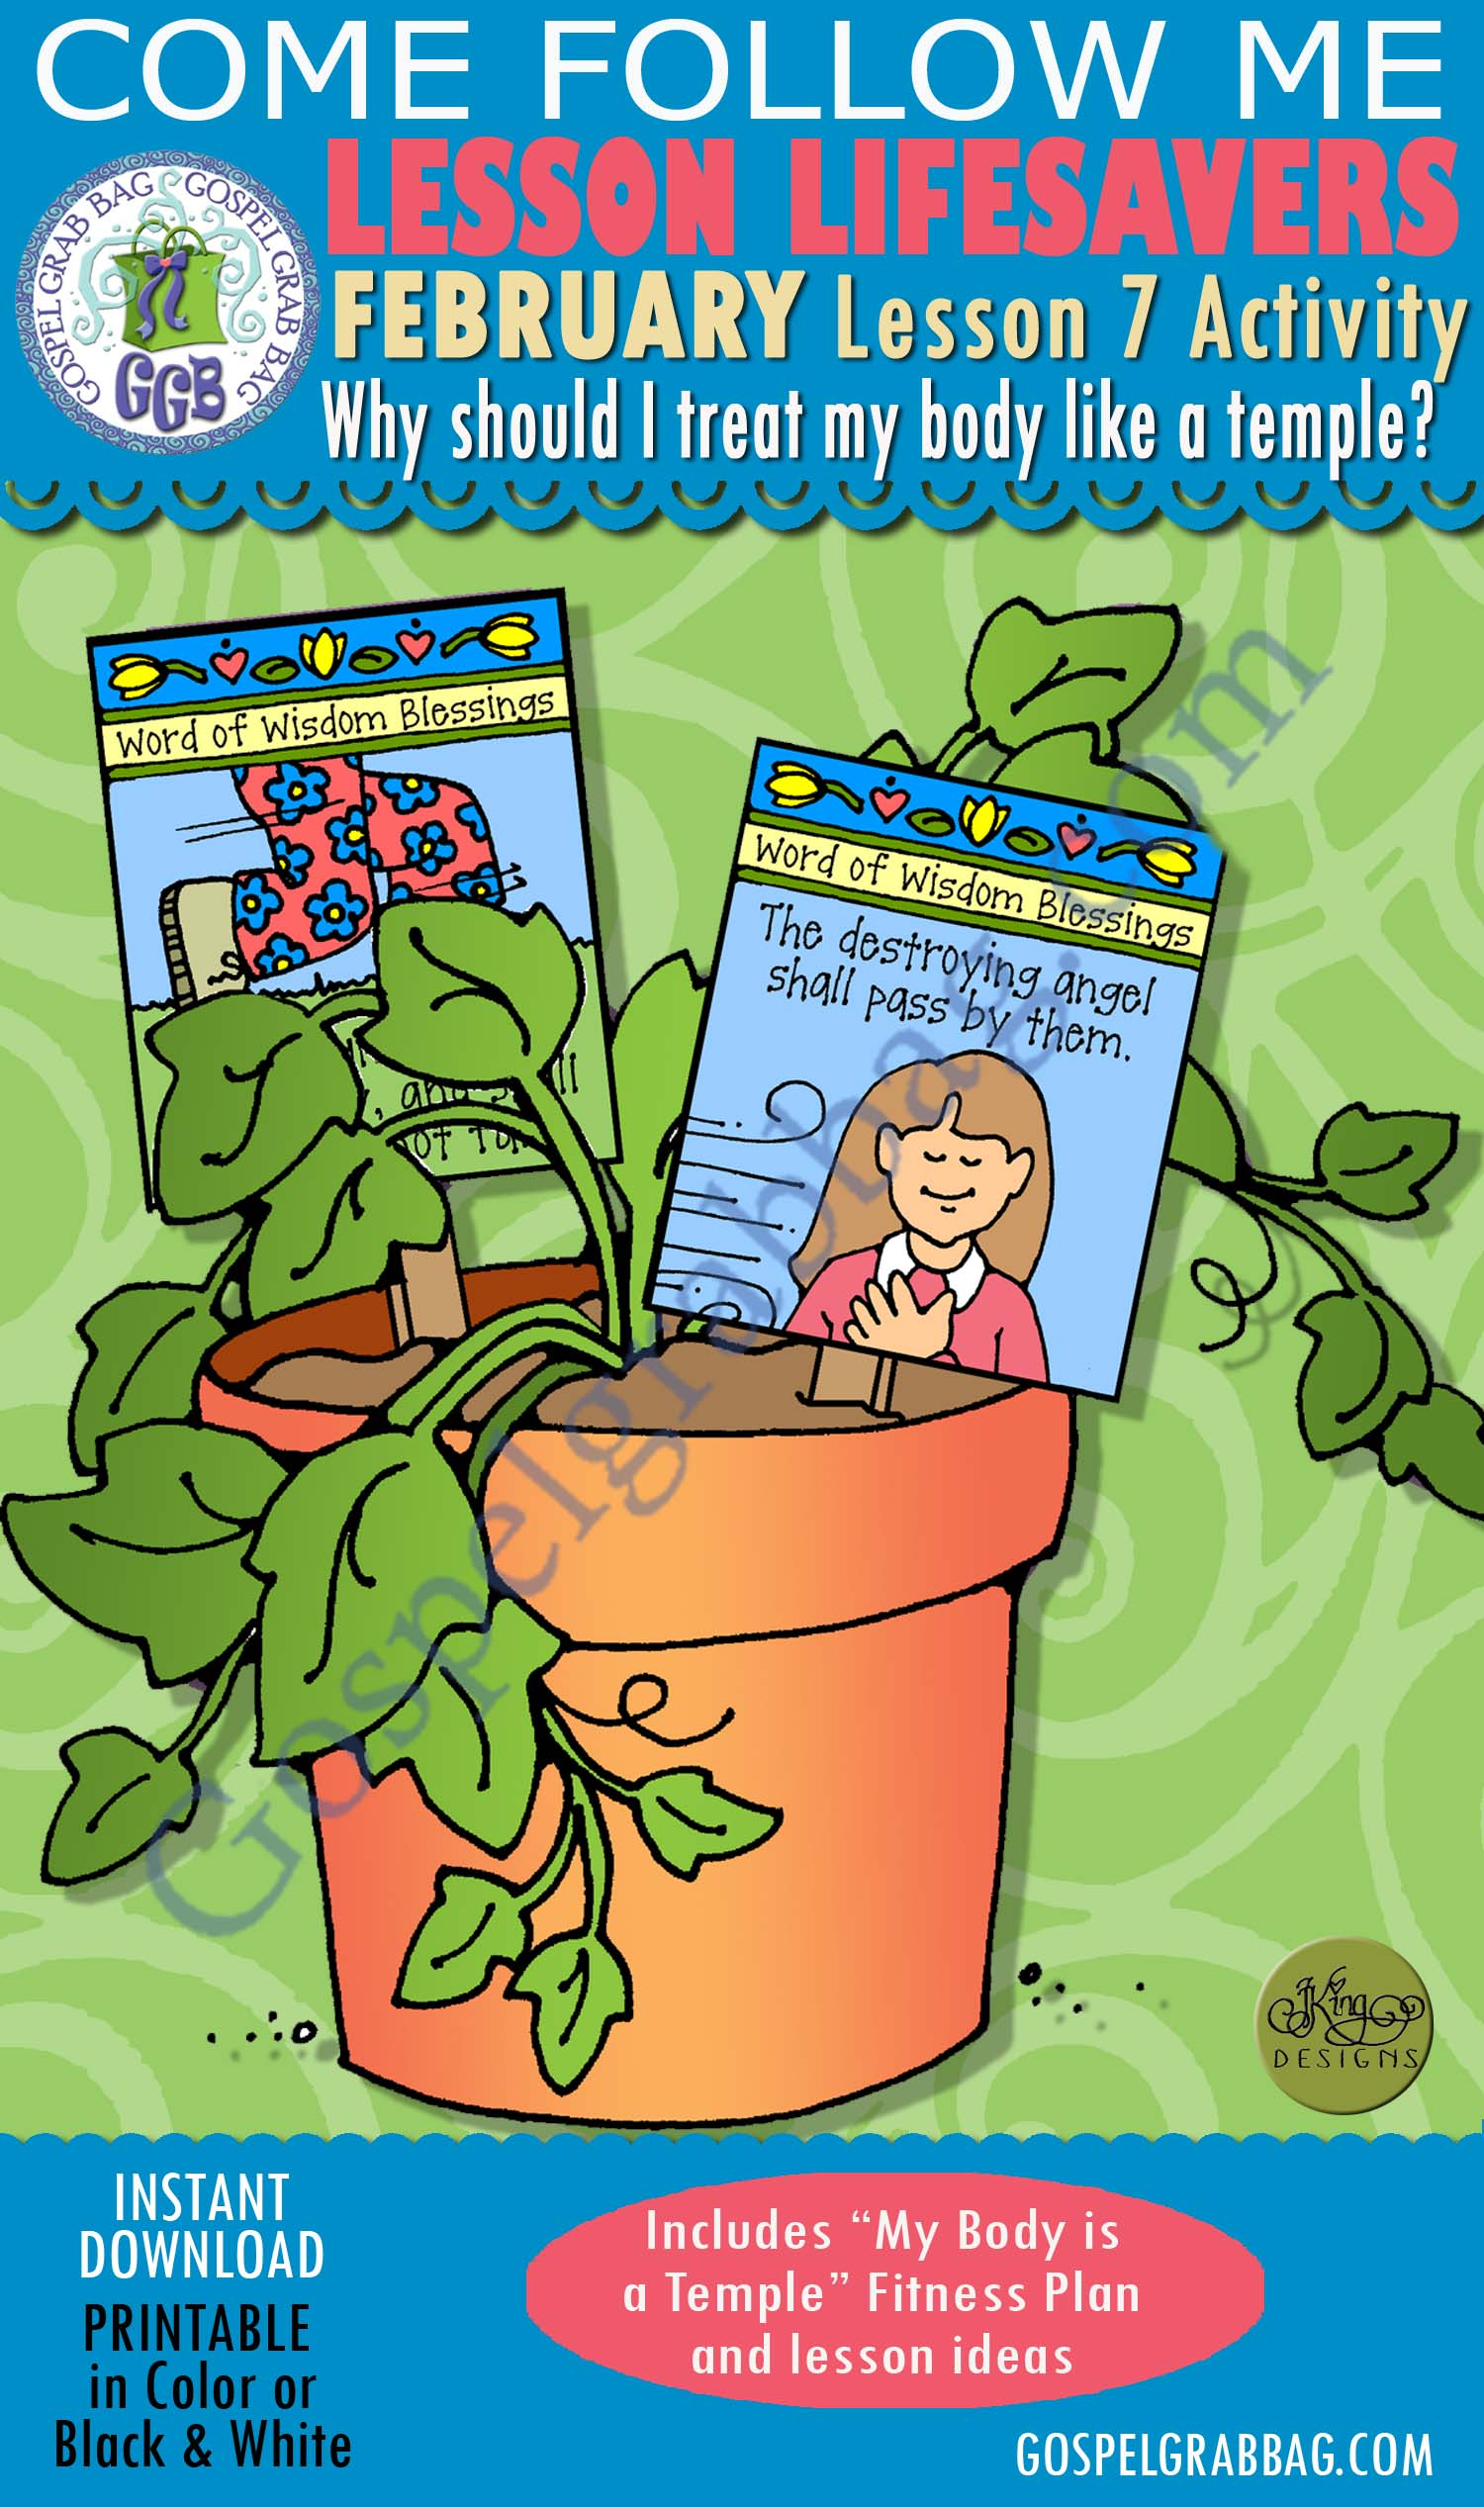 "$3.00 February Lesson 7 Come Follow Me ""Why should I treat my body like a temple?"" ACTIVITY: Word of Wisdom Blossom Blessings plant signs & block game, Young Women handouts, GospelGrabBag.com"